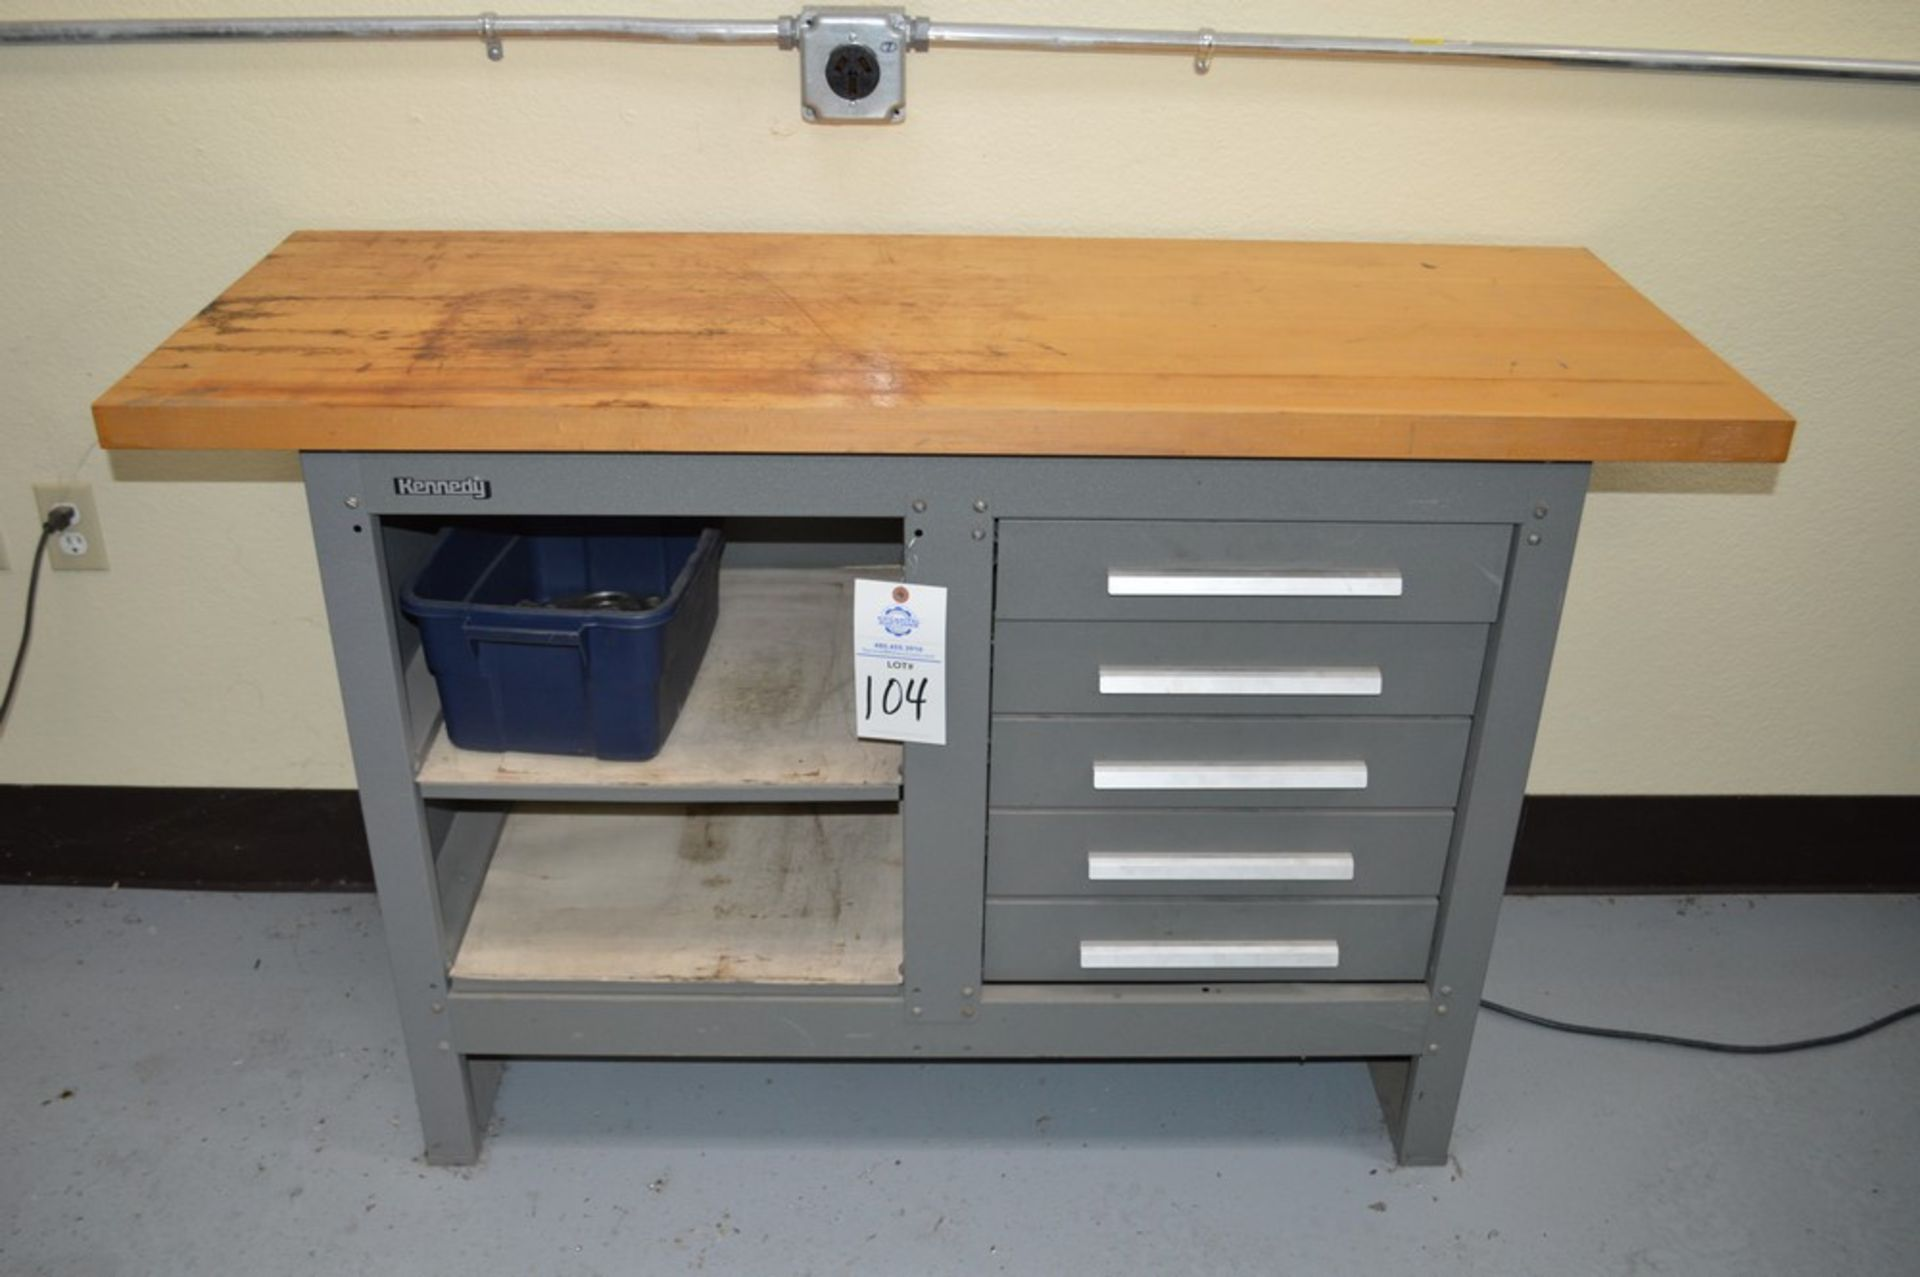 """Kennedy Wood Top, 5 drawer work bench, 54"""" x 20"""" wood top, 34.5"""" tall"""